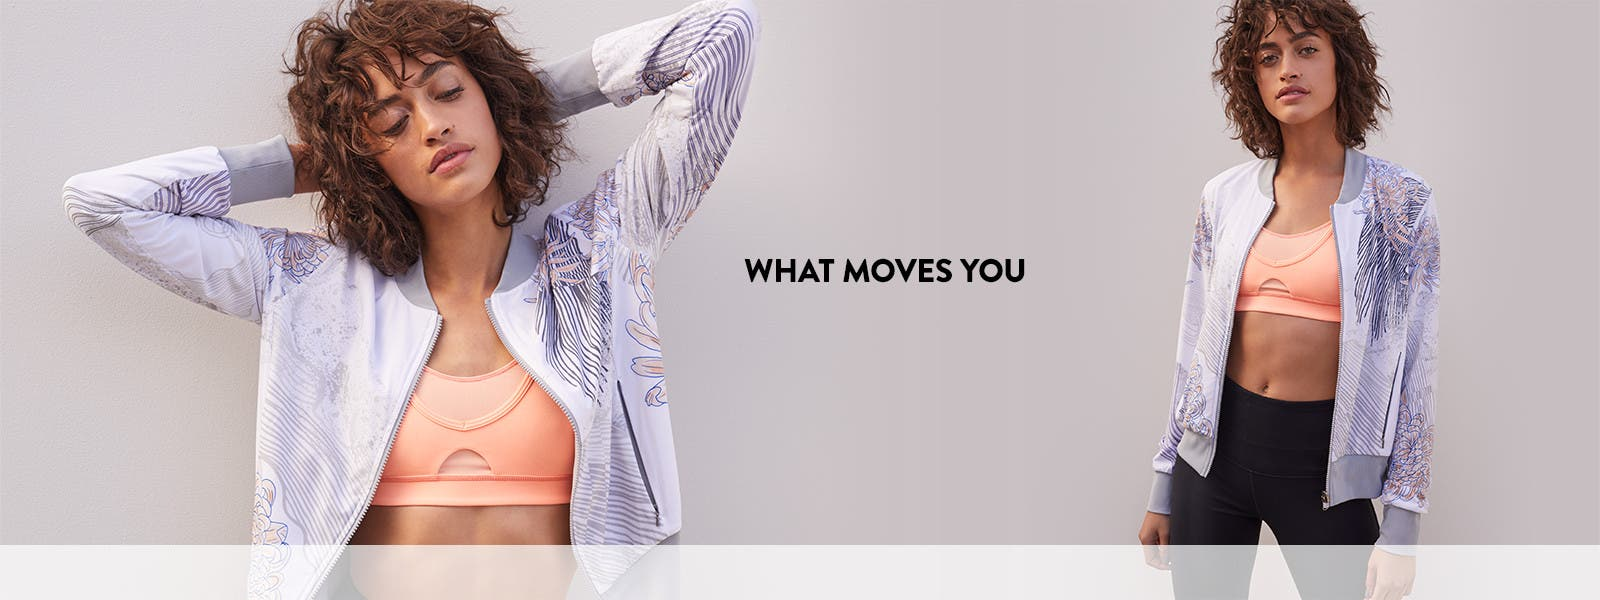 What moves you. Inspired active gear fro Zella and more.